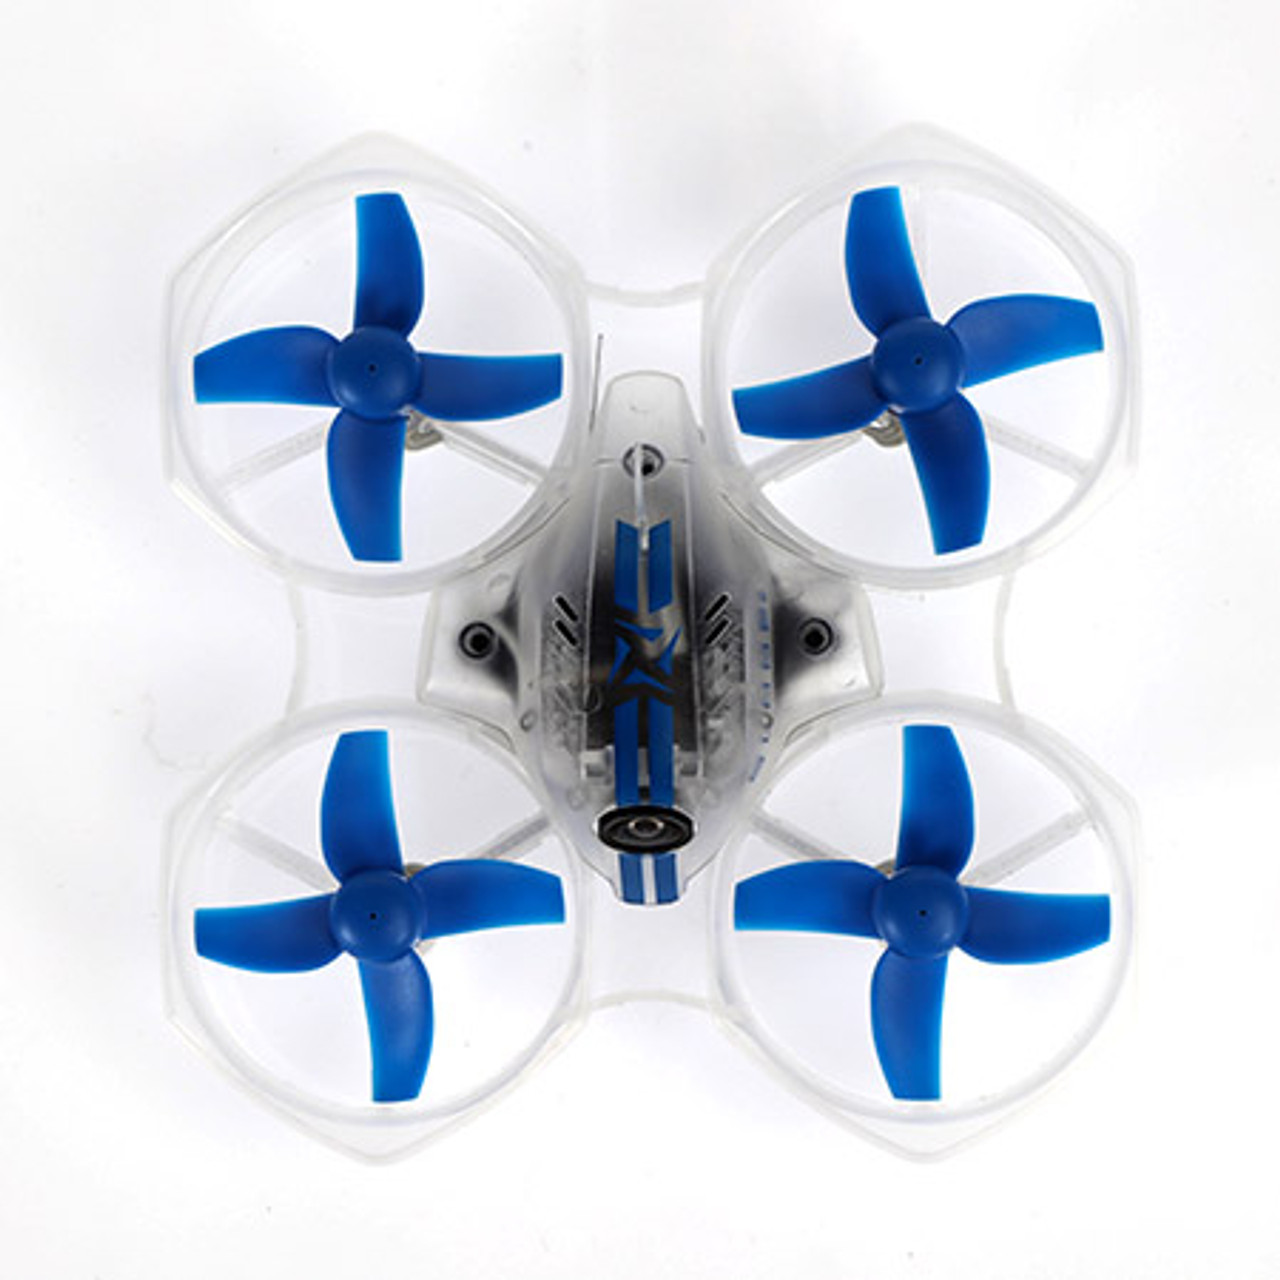 Blade Inductrix Fpv Bl Bnf Ultra Micro Brushless Electric Quadcopter Drone Beachrc Com